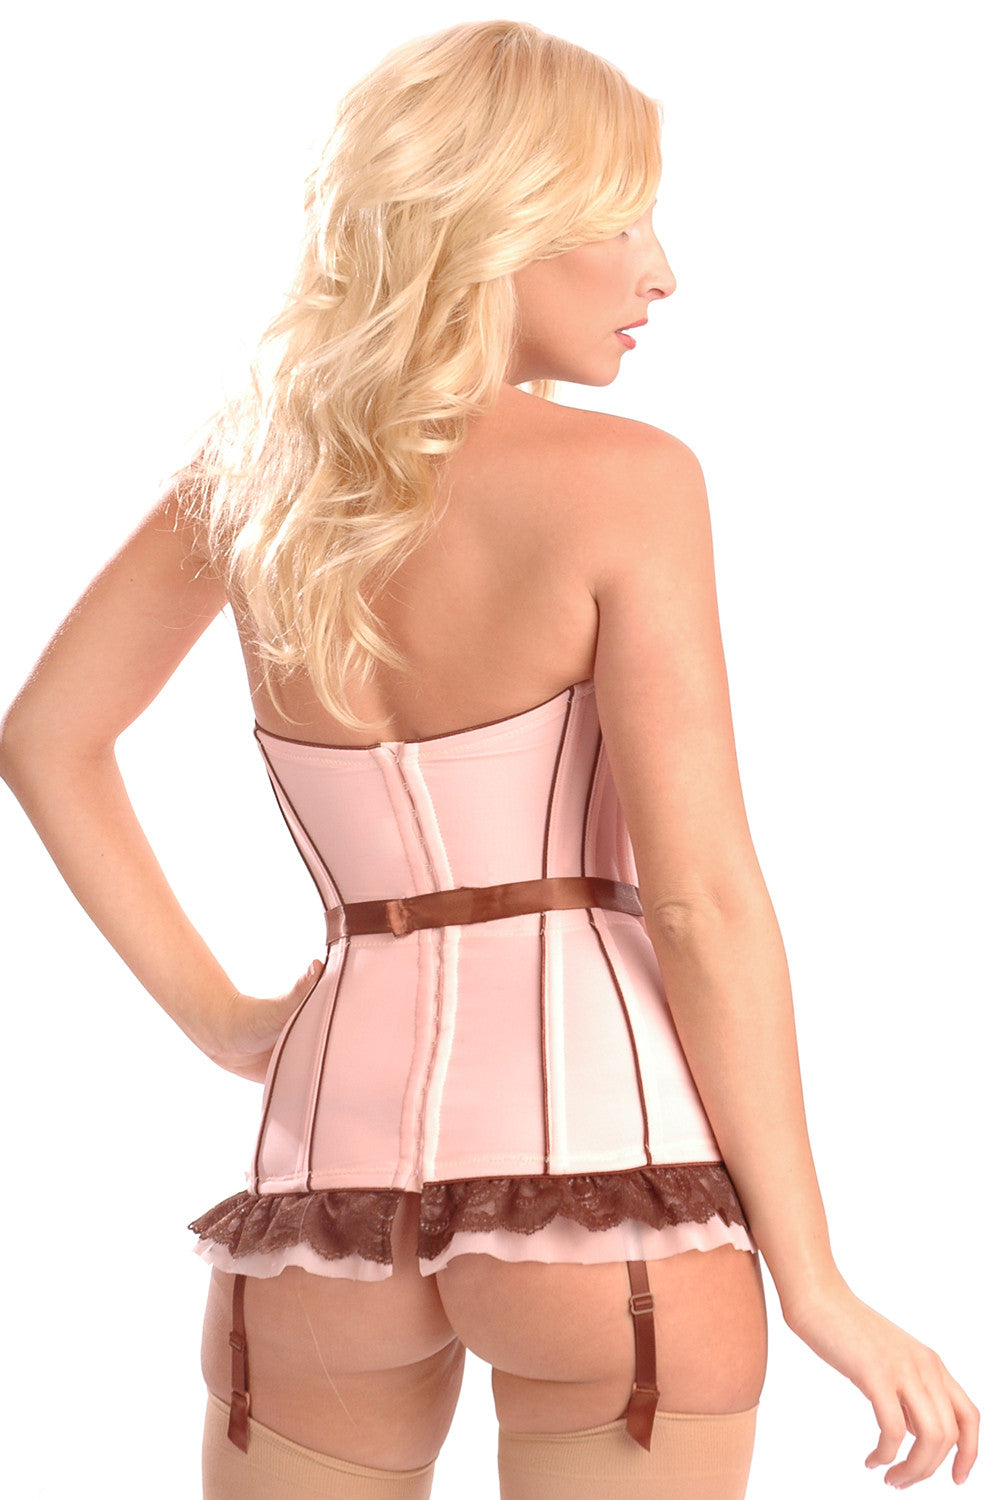 Belladonna Stretch Corset with Detachable Garters